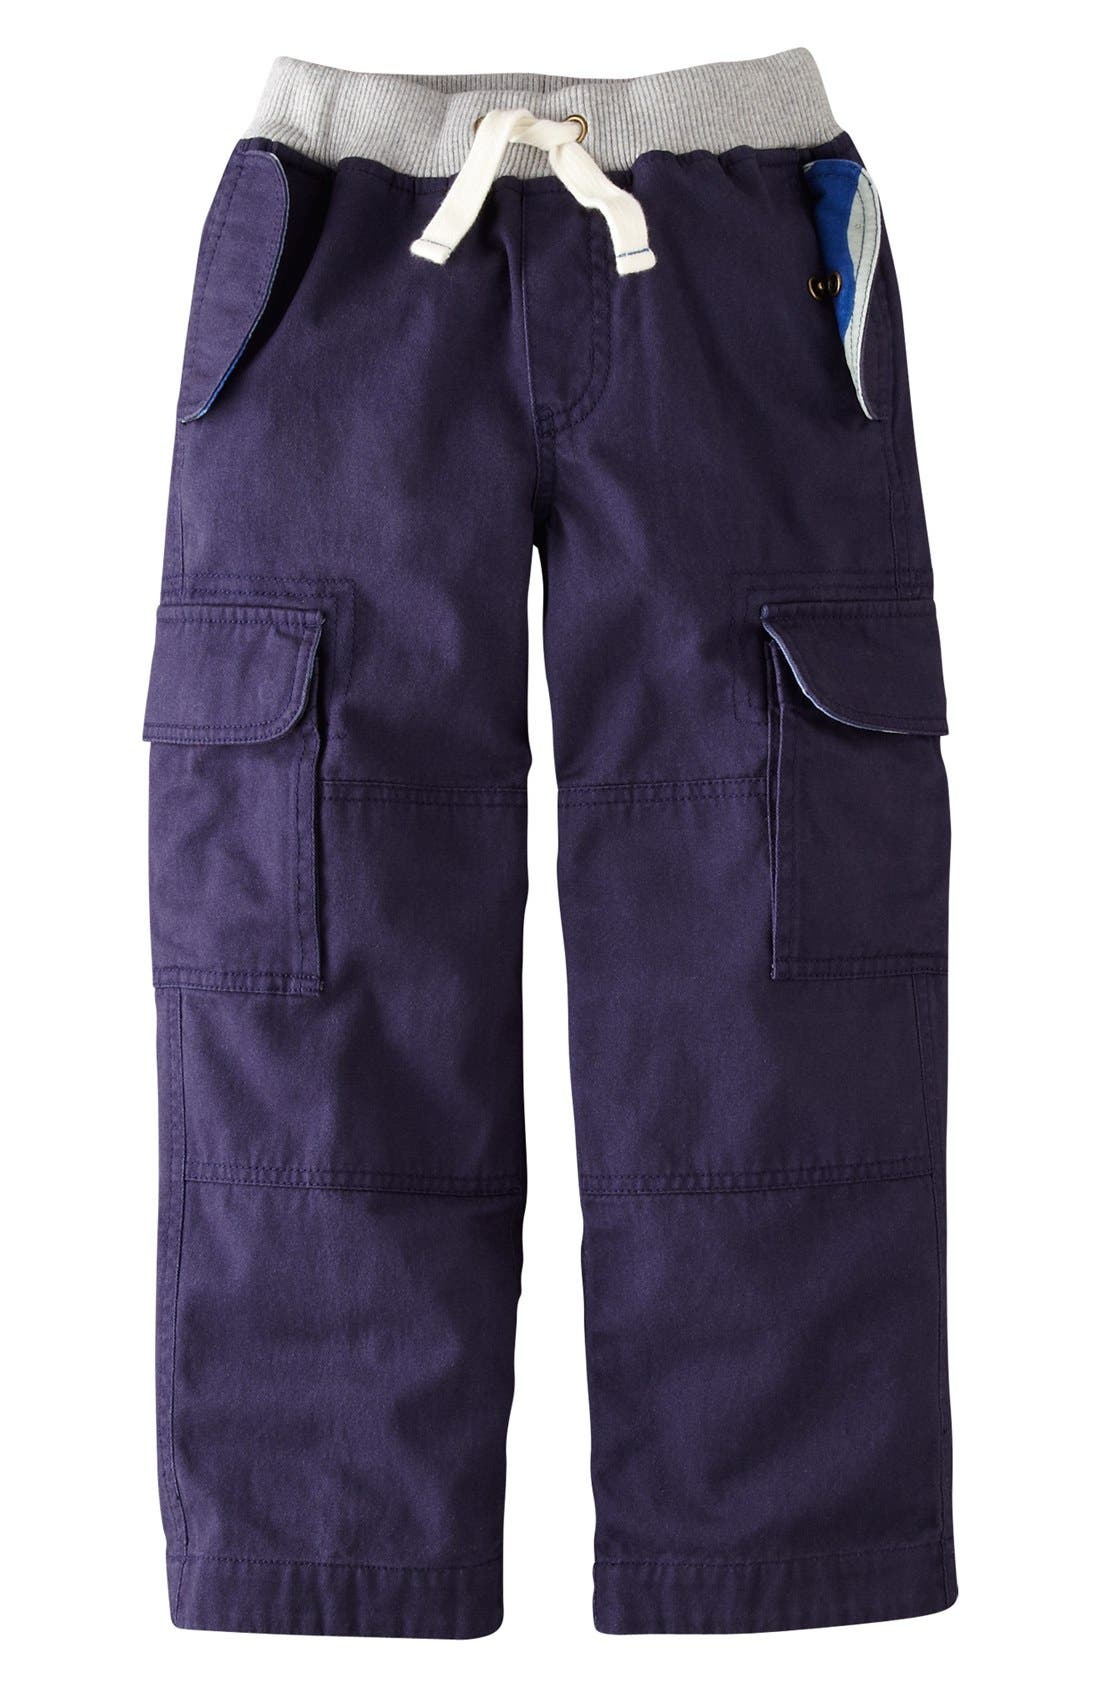 Main Image - Mini Boden Ribbed Waist Cargo Pants (Toddler Boys, Little Boys & Big Boys)